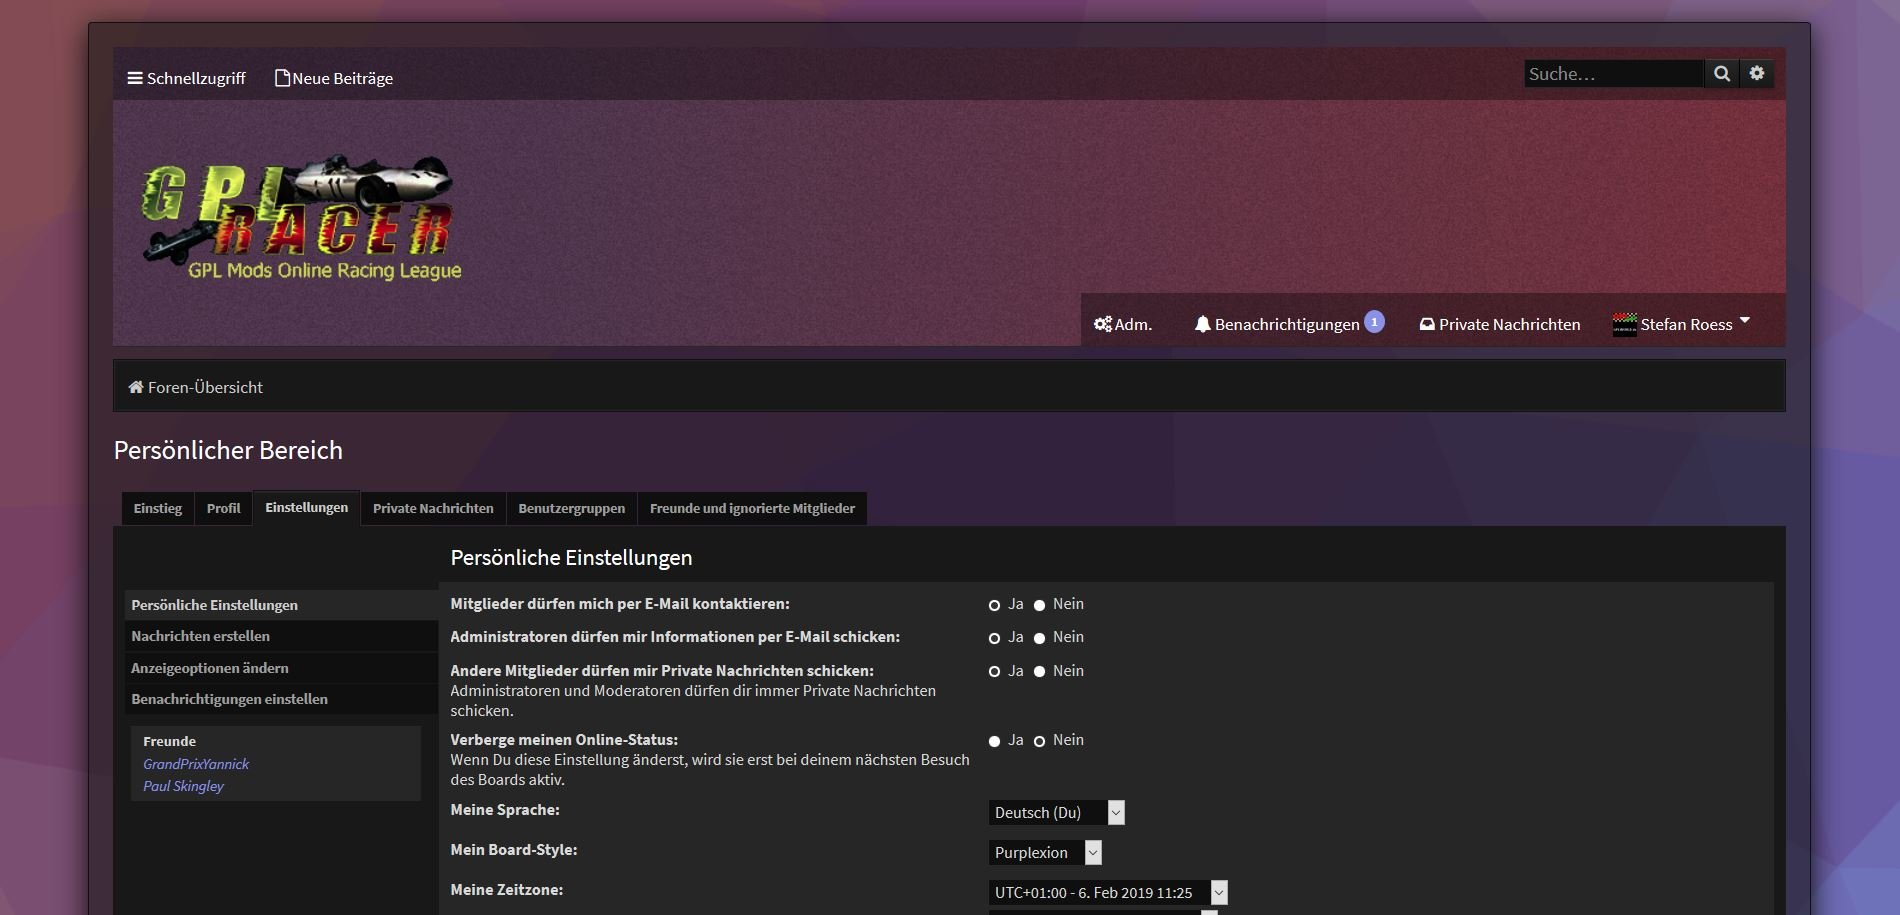 Purplexion_Board-Style_GPLRACER_screen.JPG